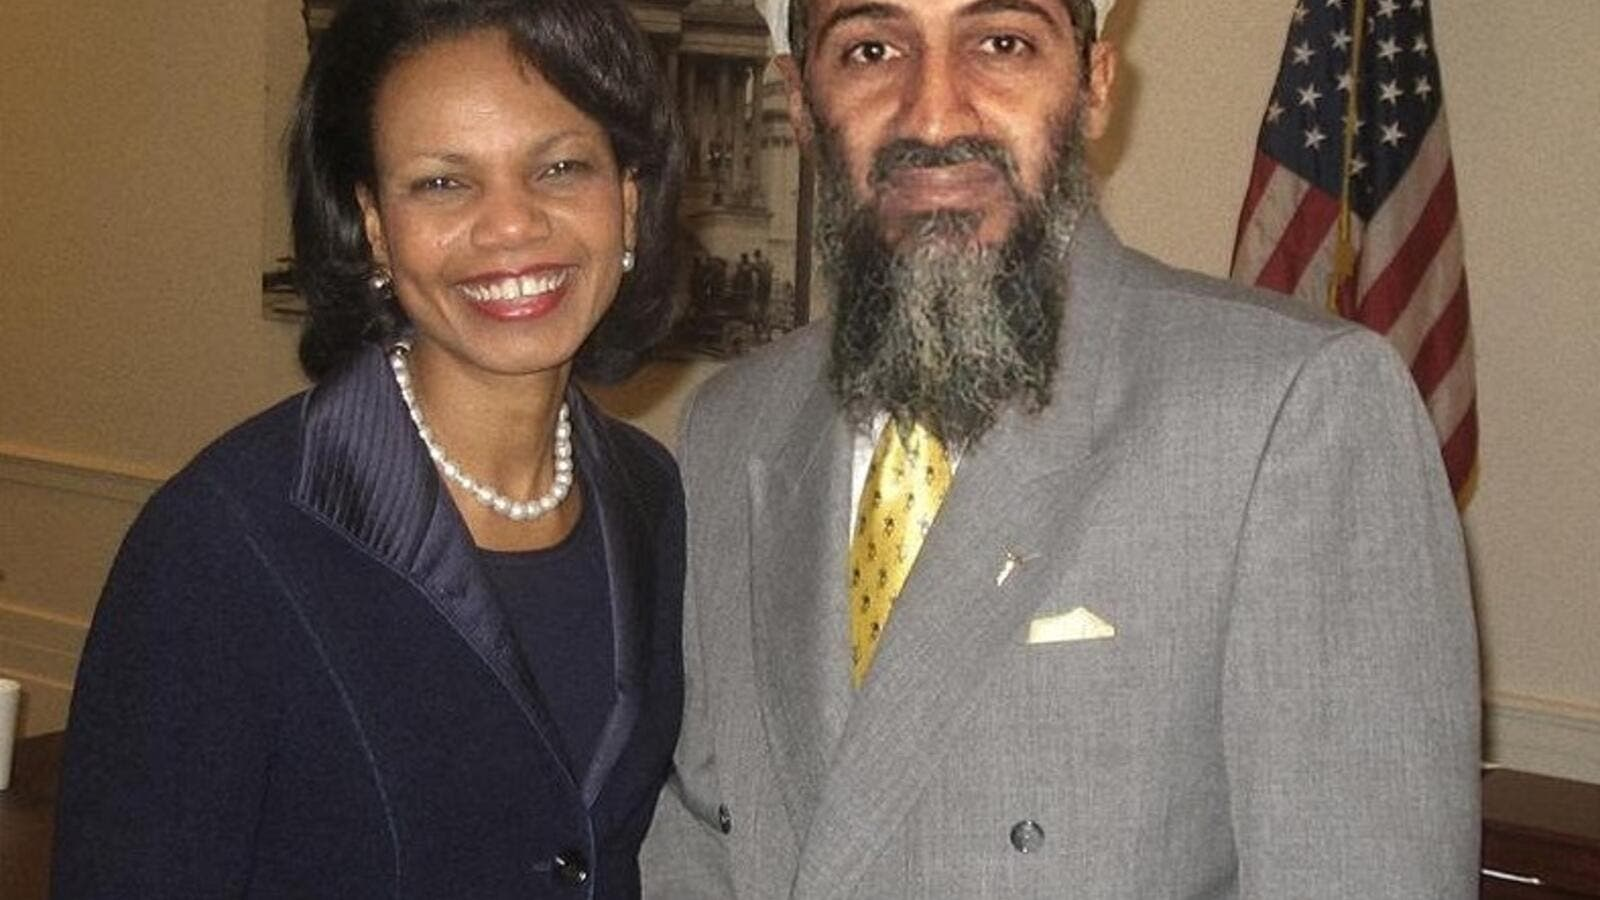 Former al-Qaeda leader Osama bin Laden and former US Secretary of State Condoleezza Rice. (FreakingNews.com)